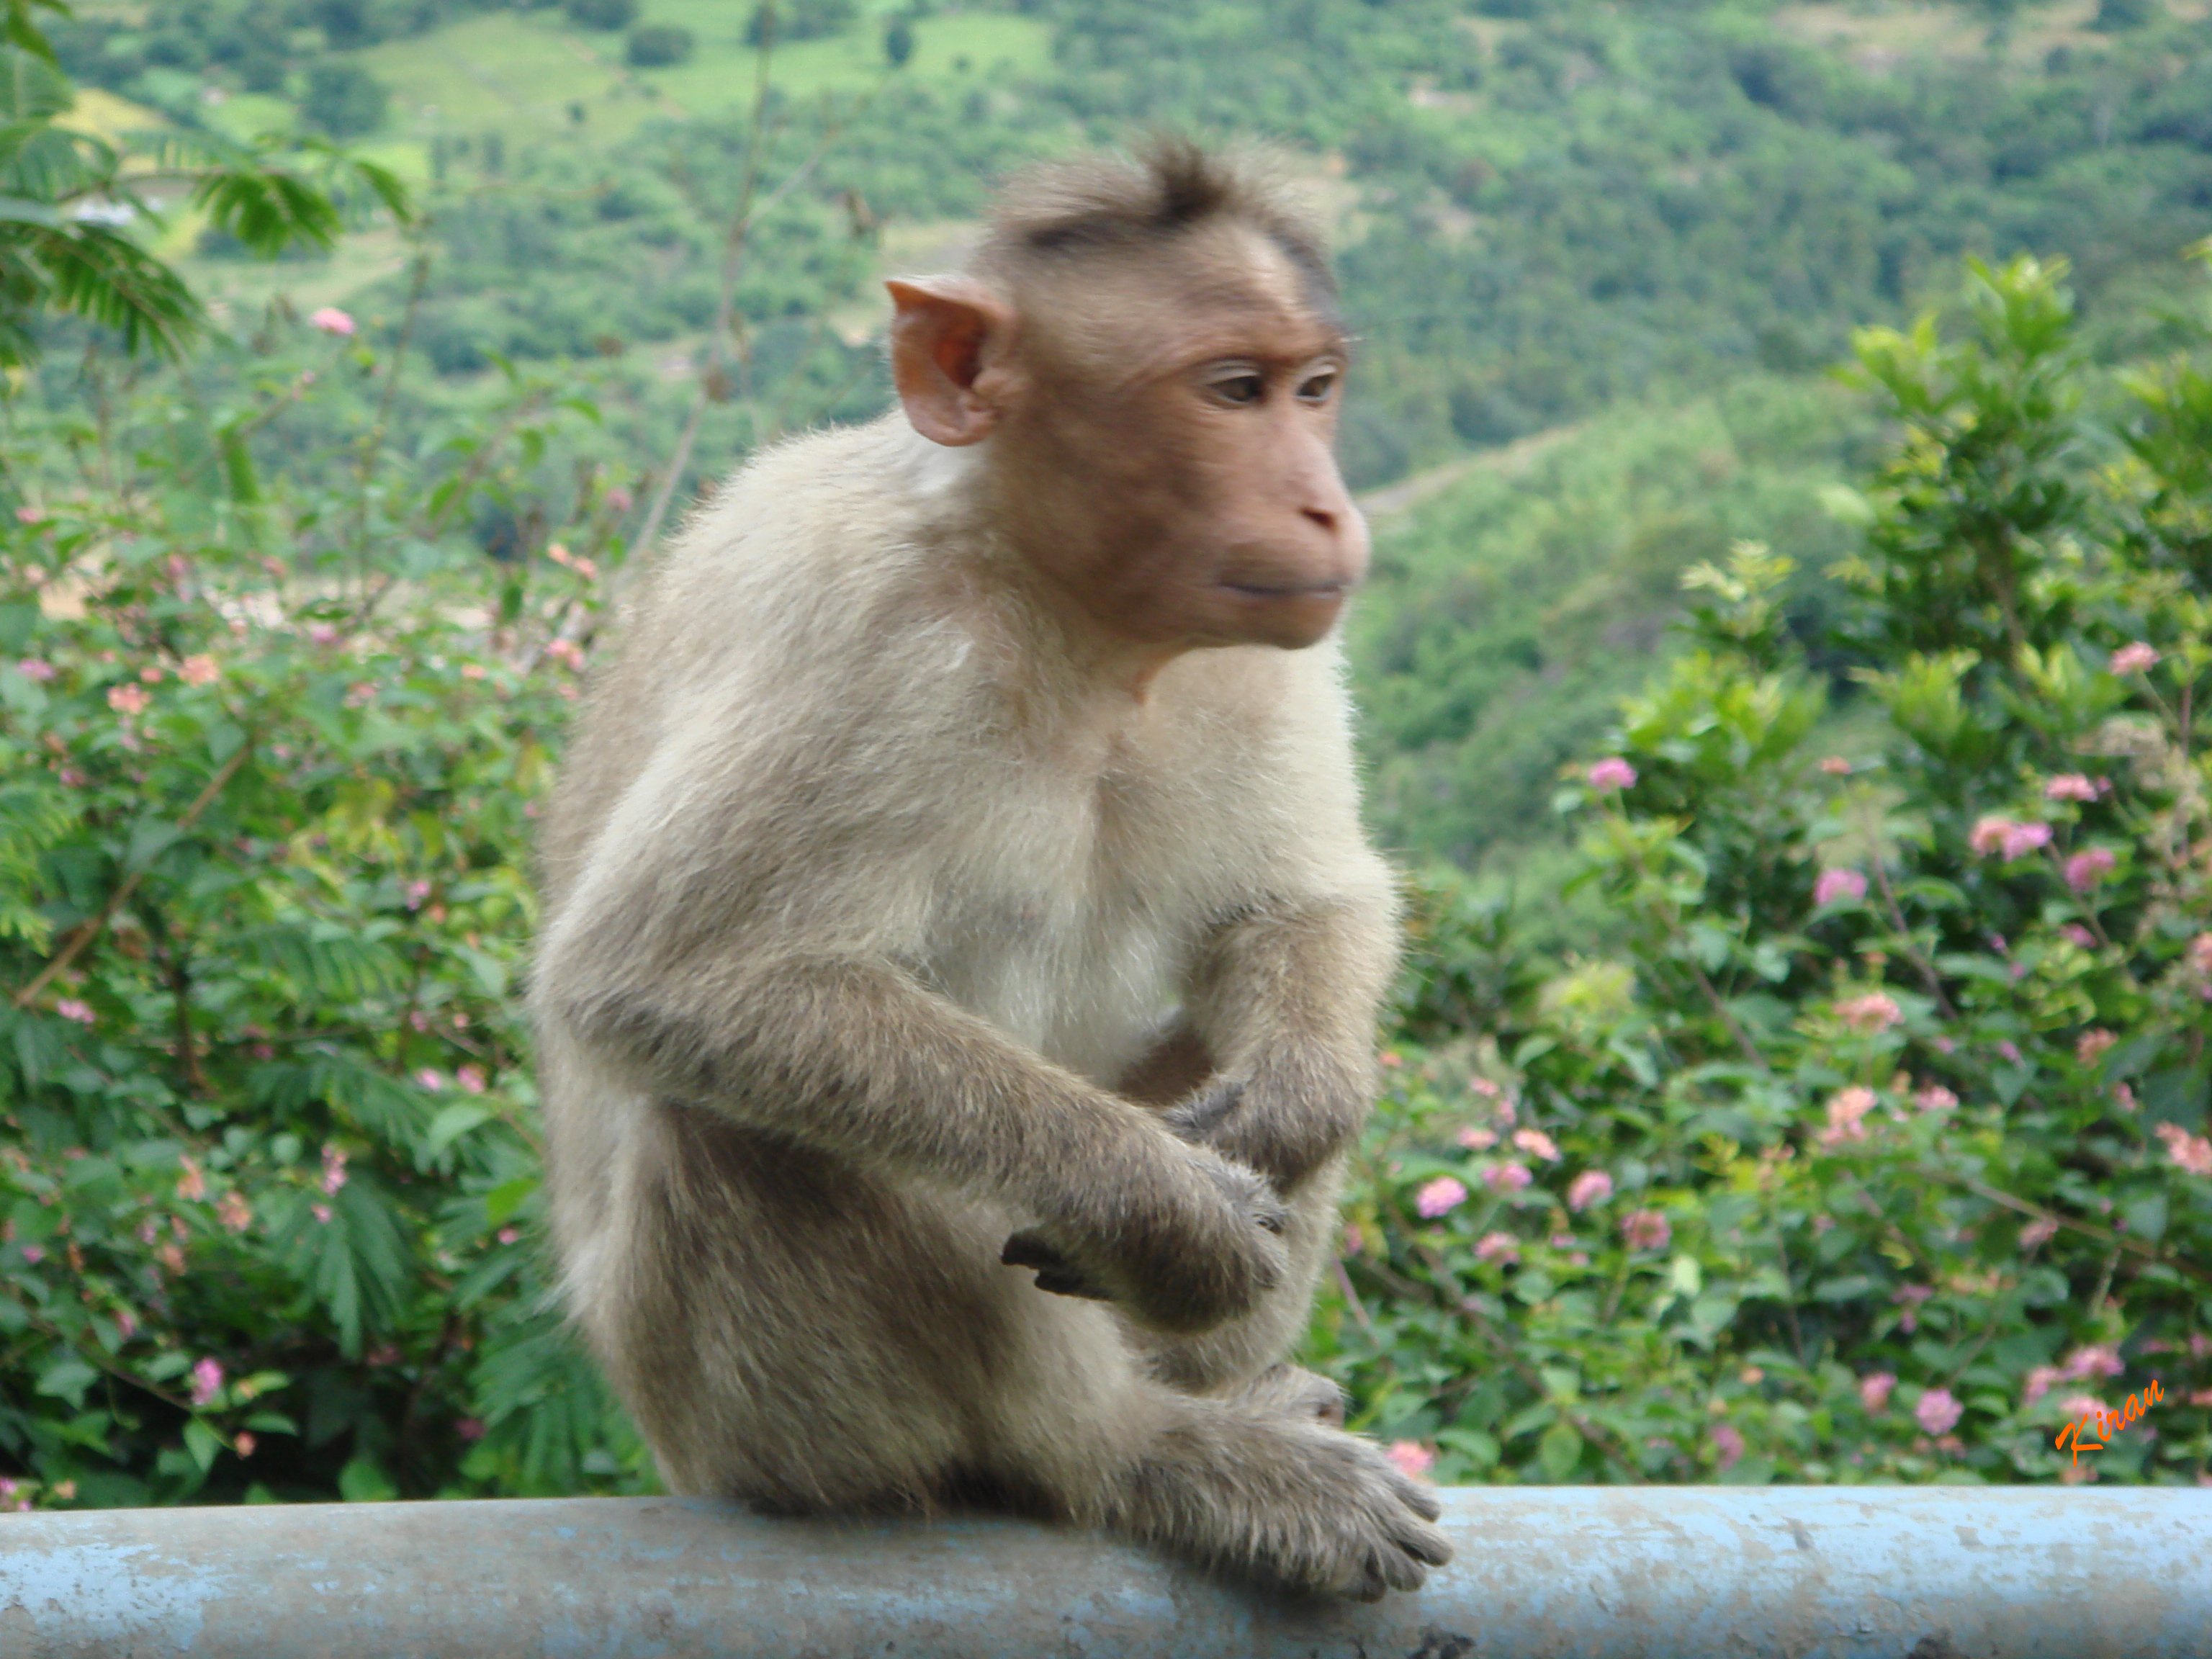 Sitting Monkey, Animal, Ape, Monkey, Primate, HQ Photo